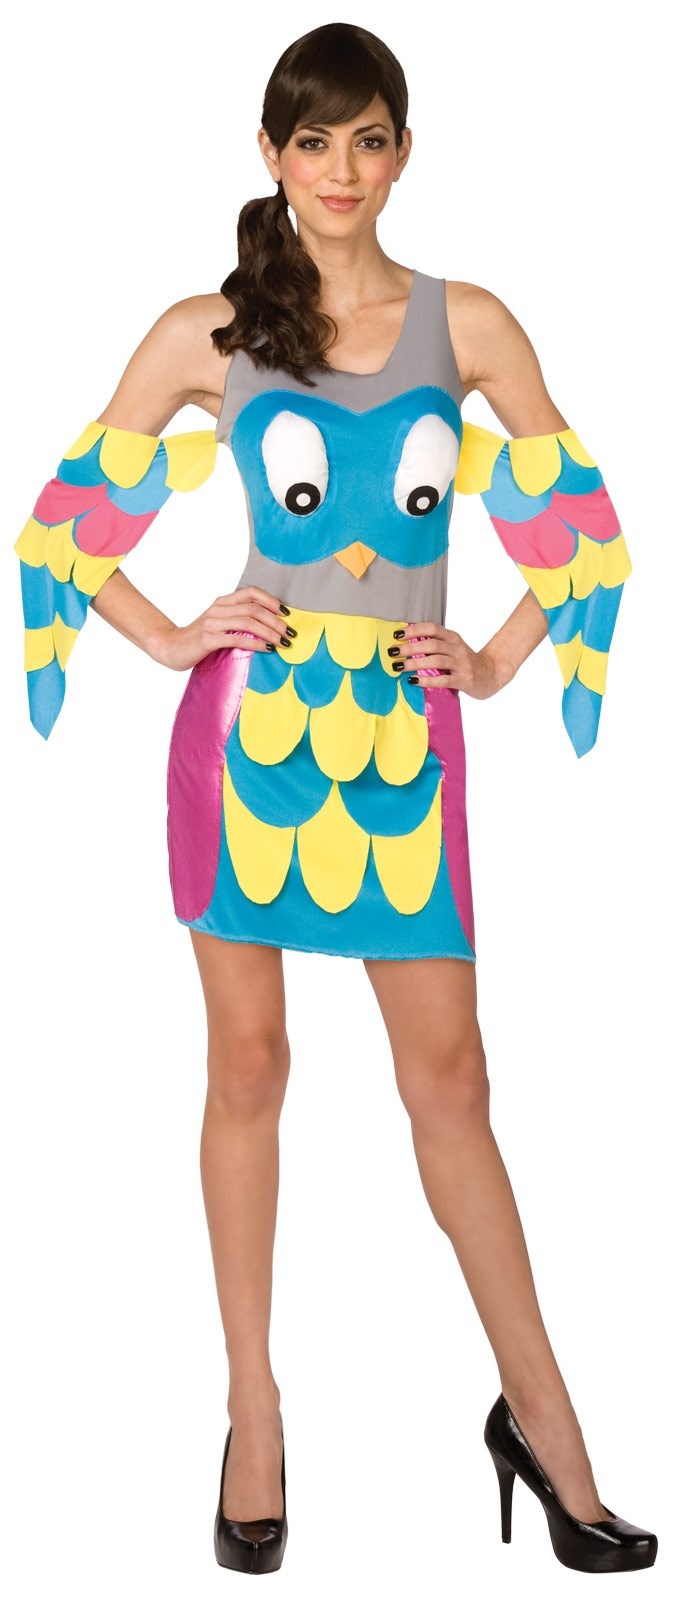 What a Hoot! Owl Adult Costume